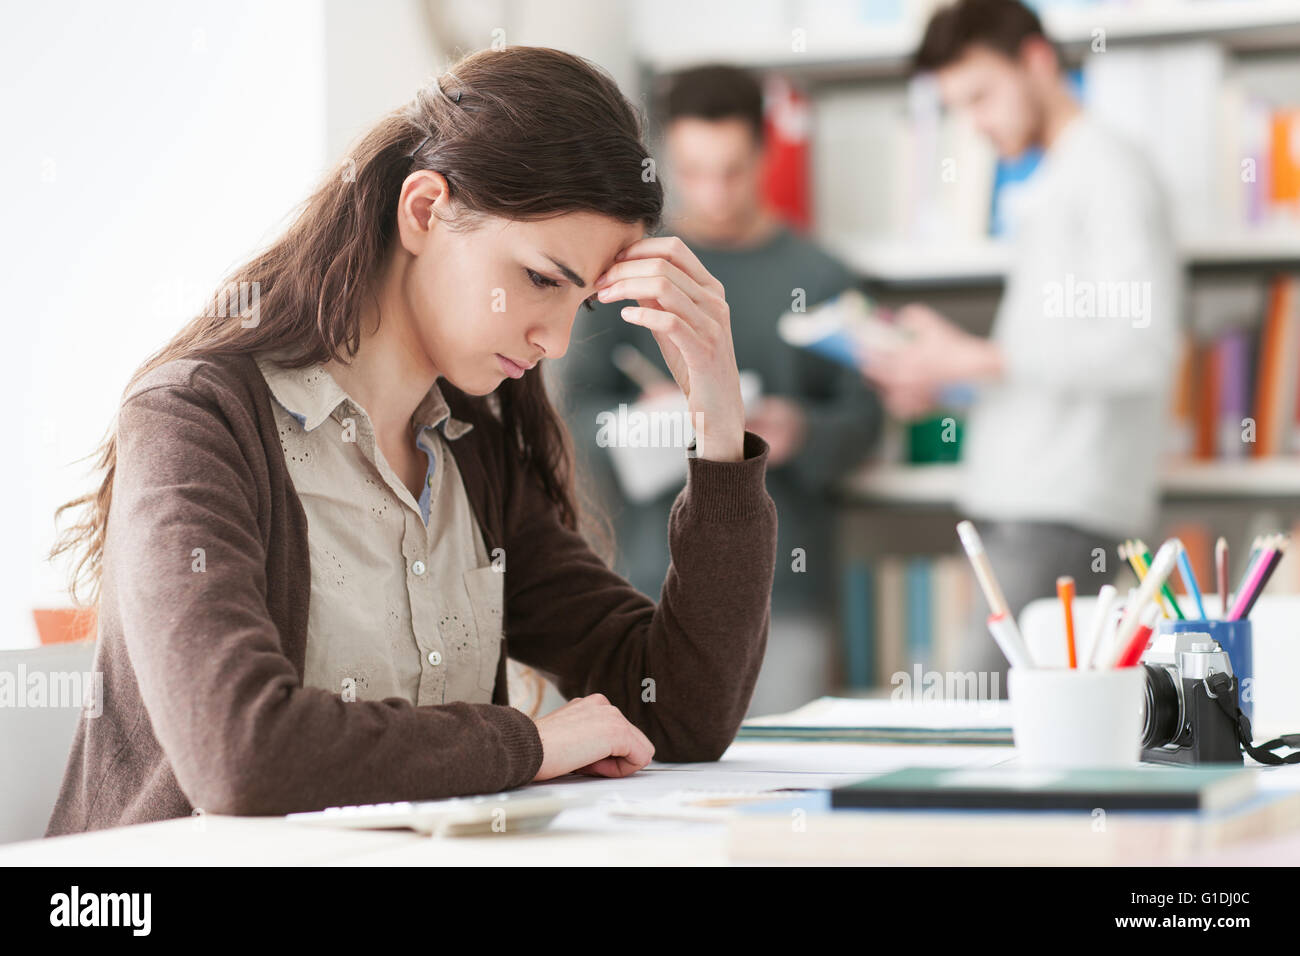 Young female student with headache, she is sitting at desk and touching her head - Stock Image